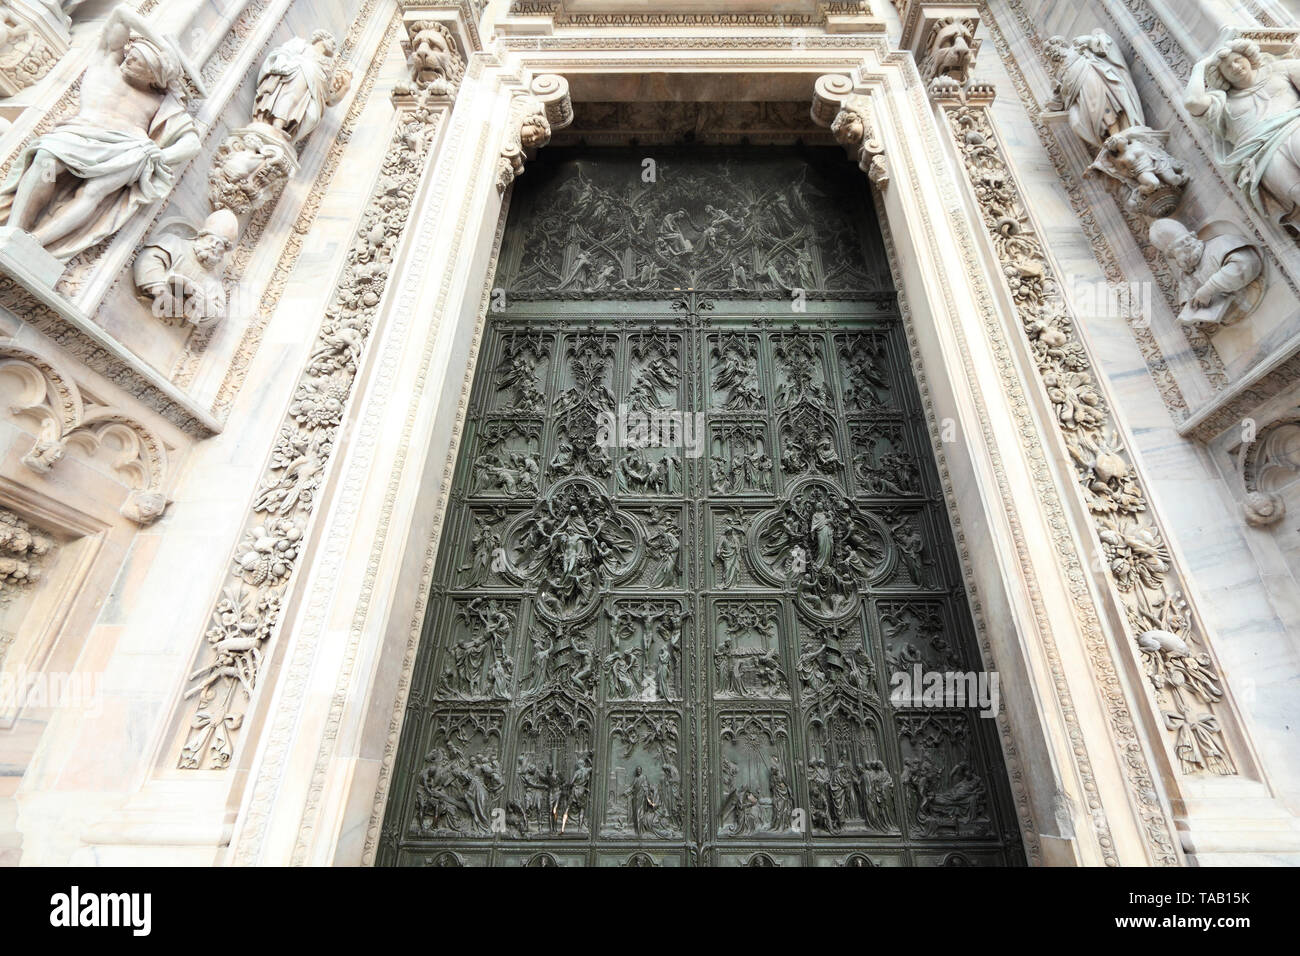 Milan cathedral door detail - brass bas relief art. Architecture in Italy. - Stock Image